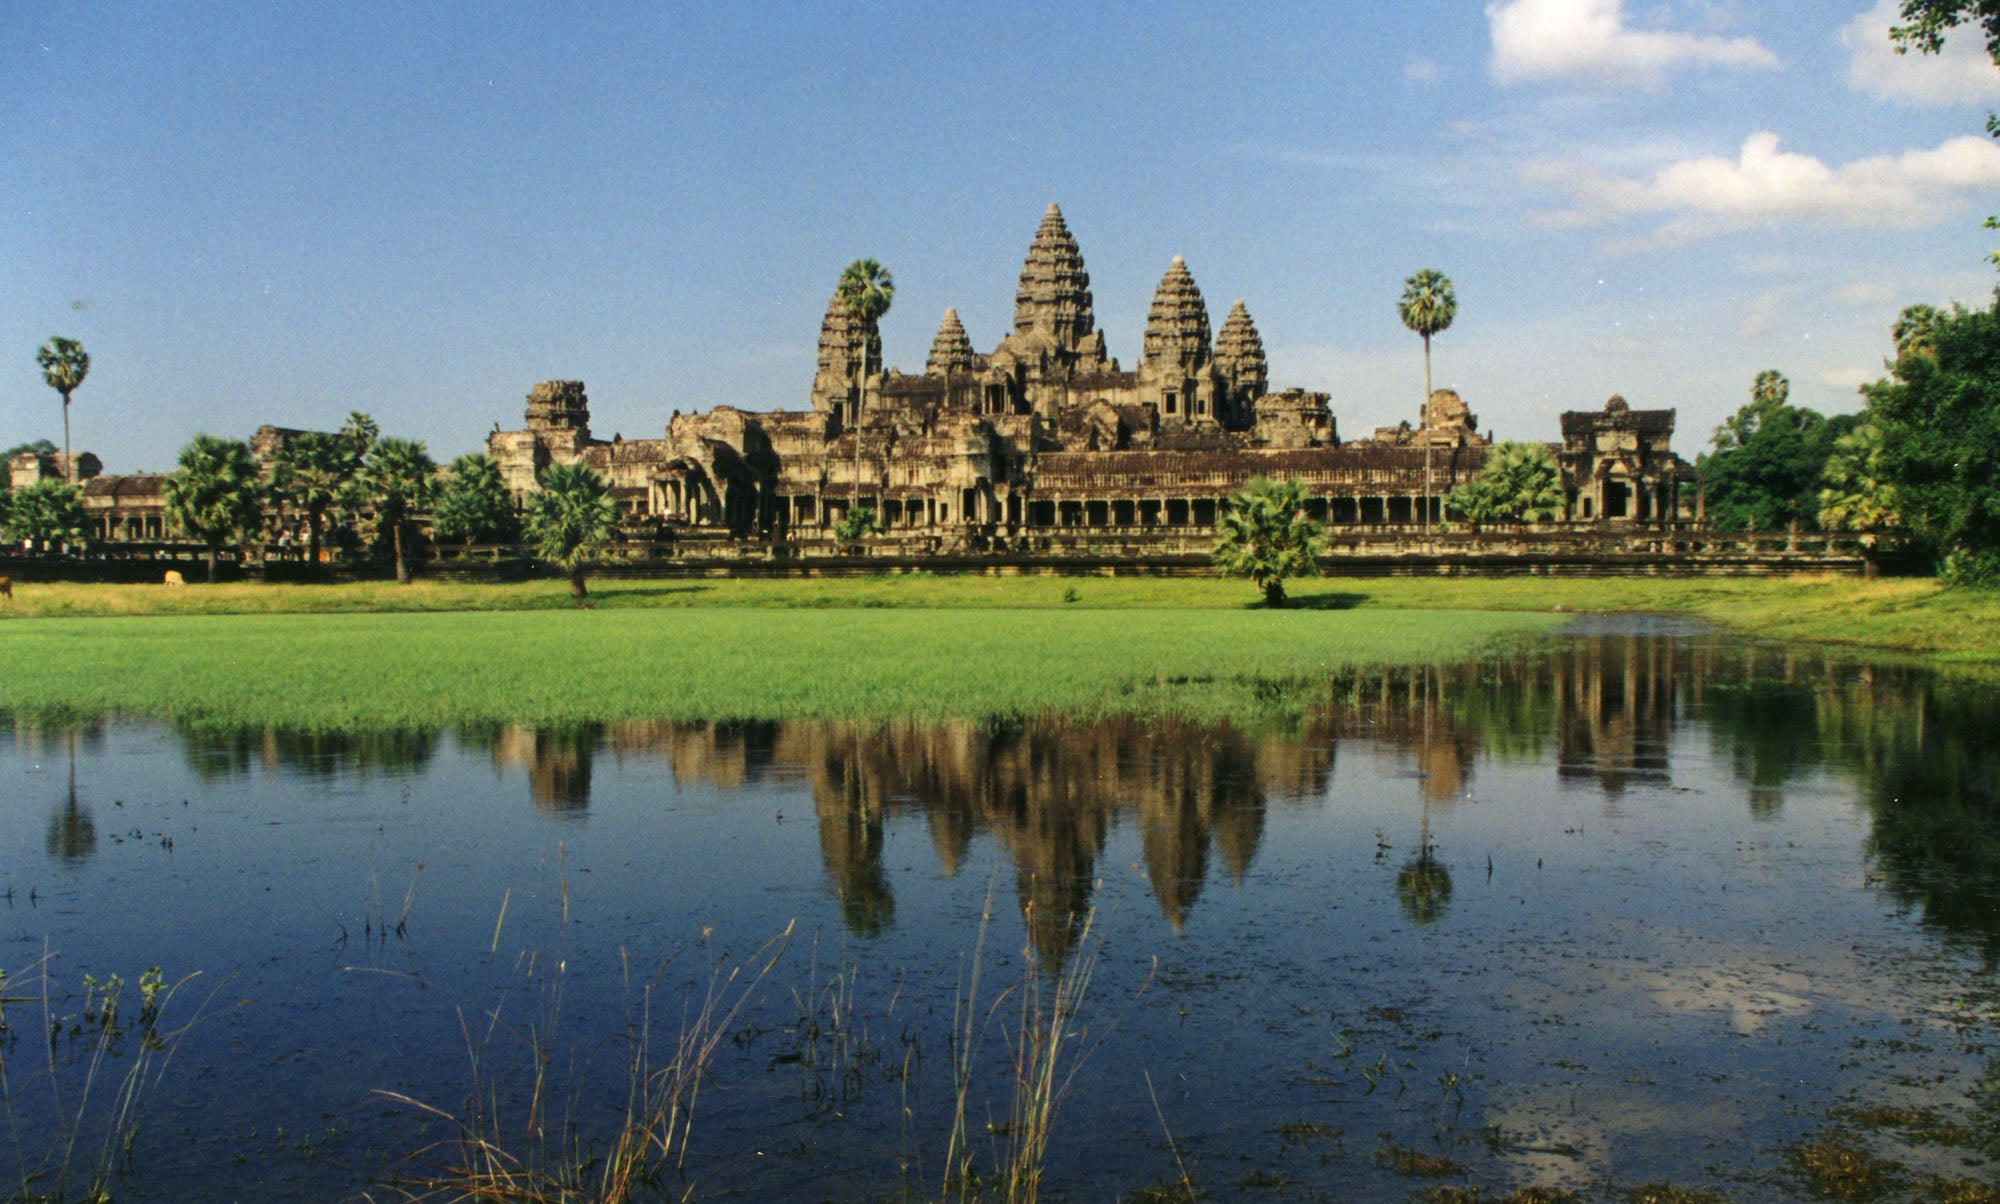 Club de golf en Angkor Wat